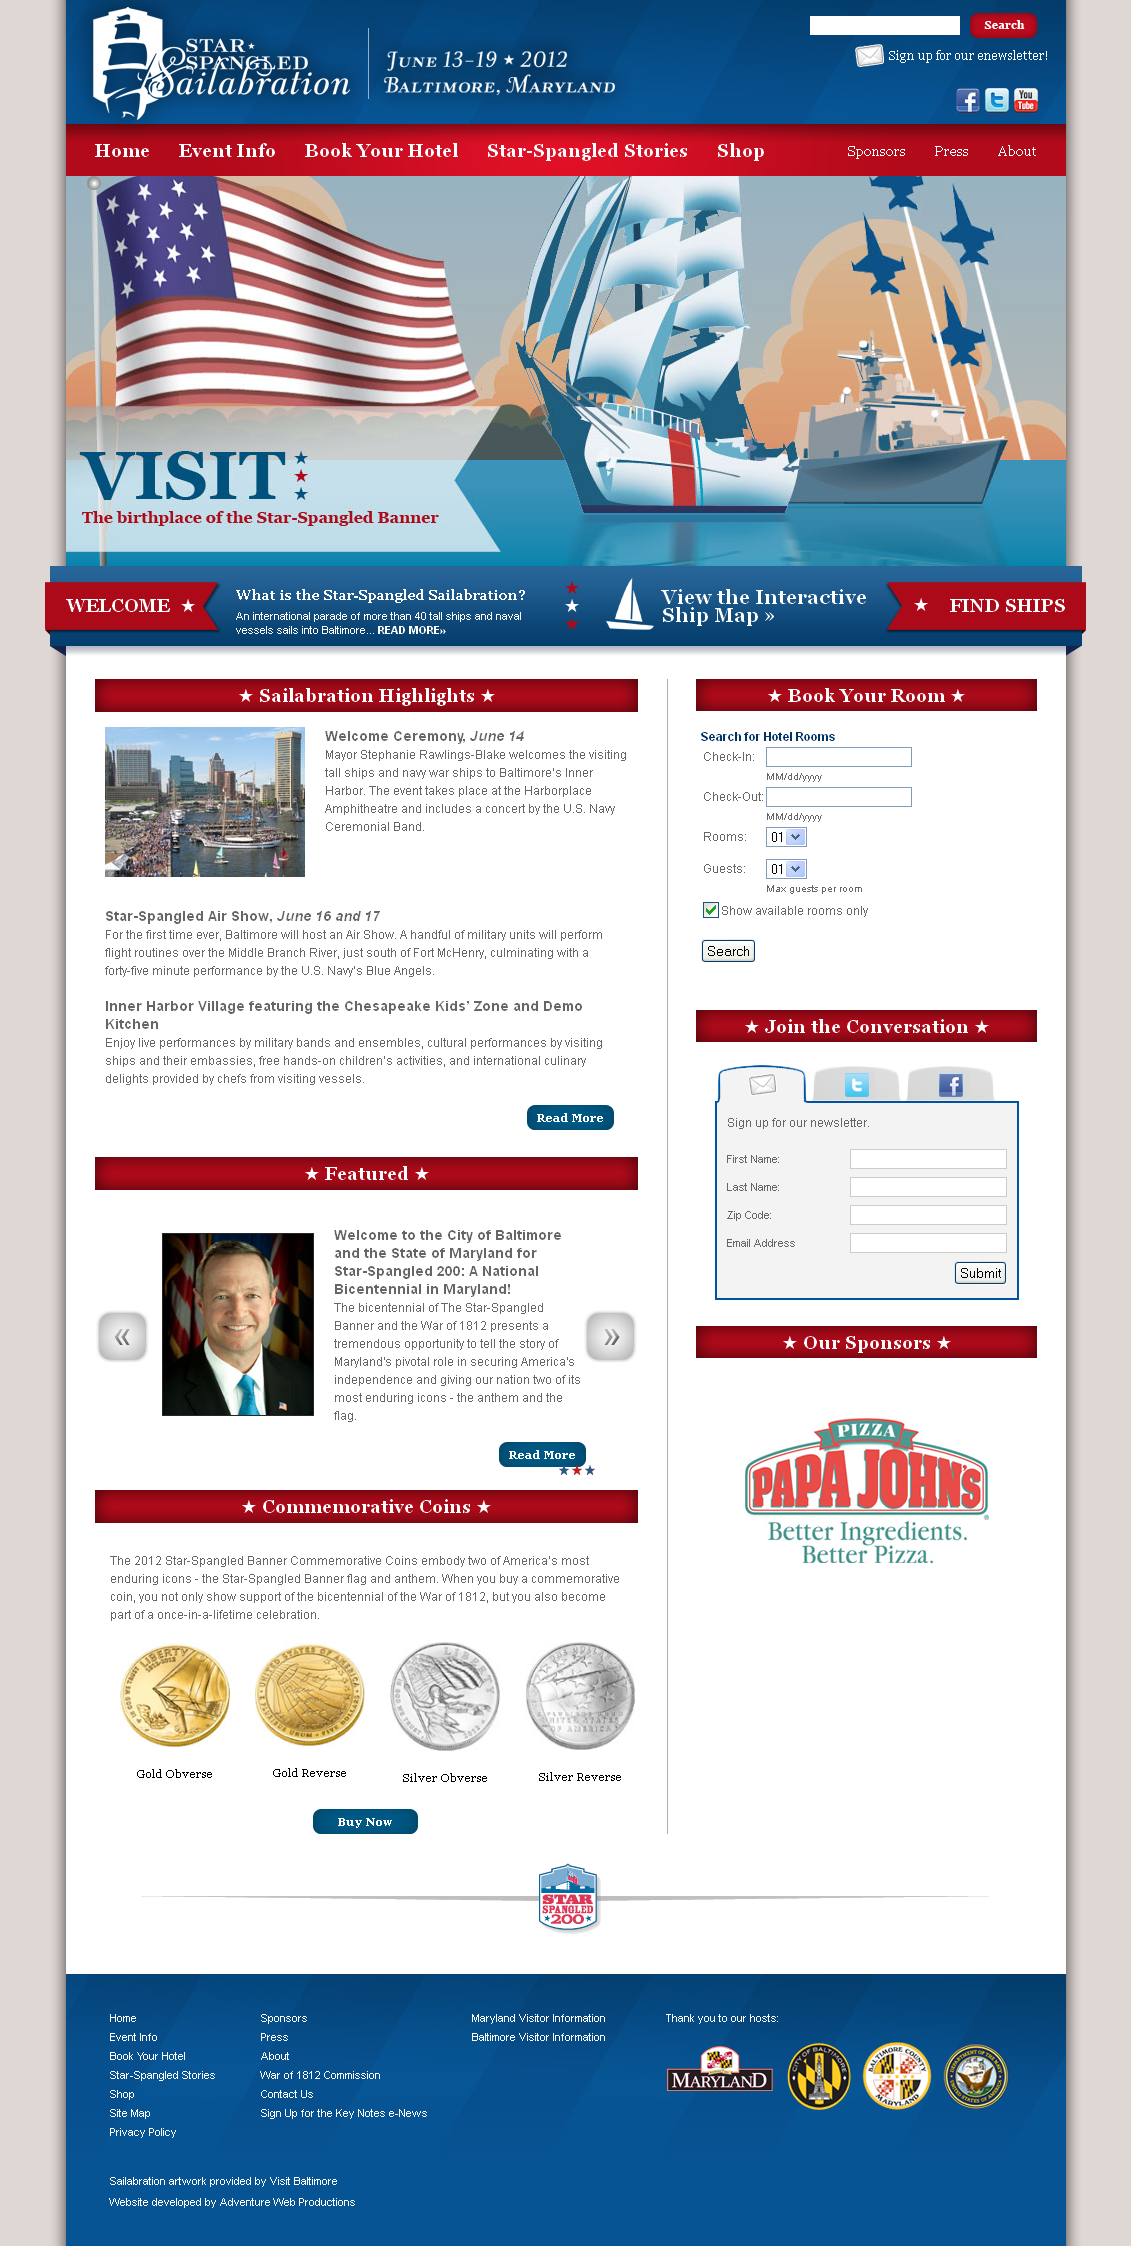 Adventure Web Productions Has Recently Launched Star Spangled Sailabration's New Company Website!